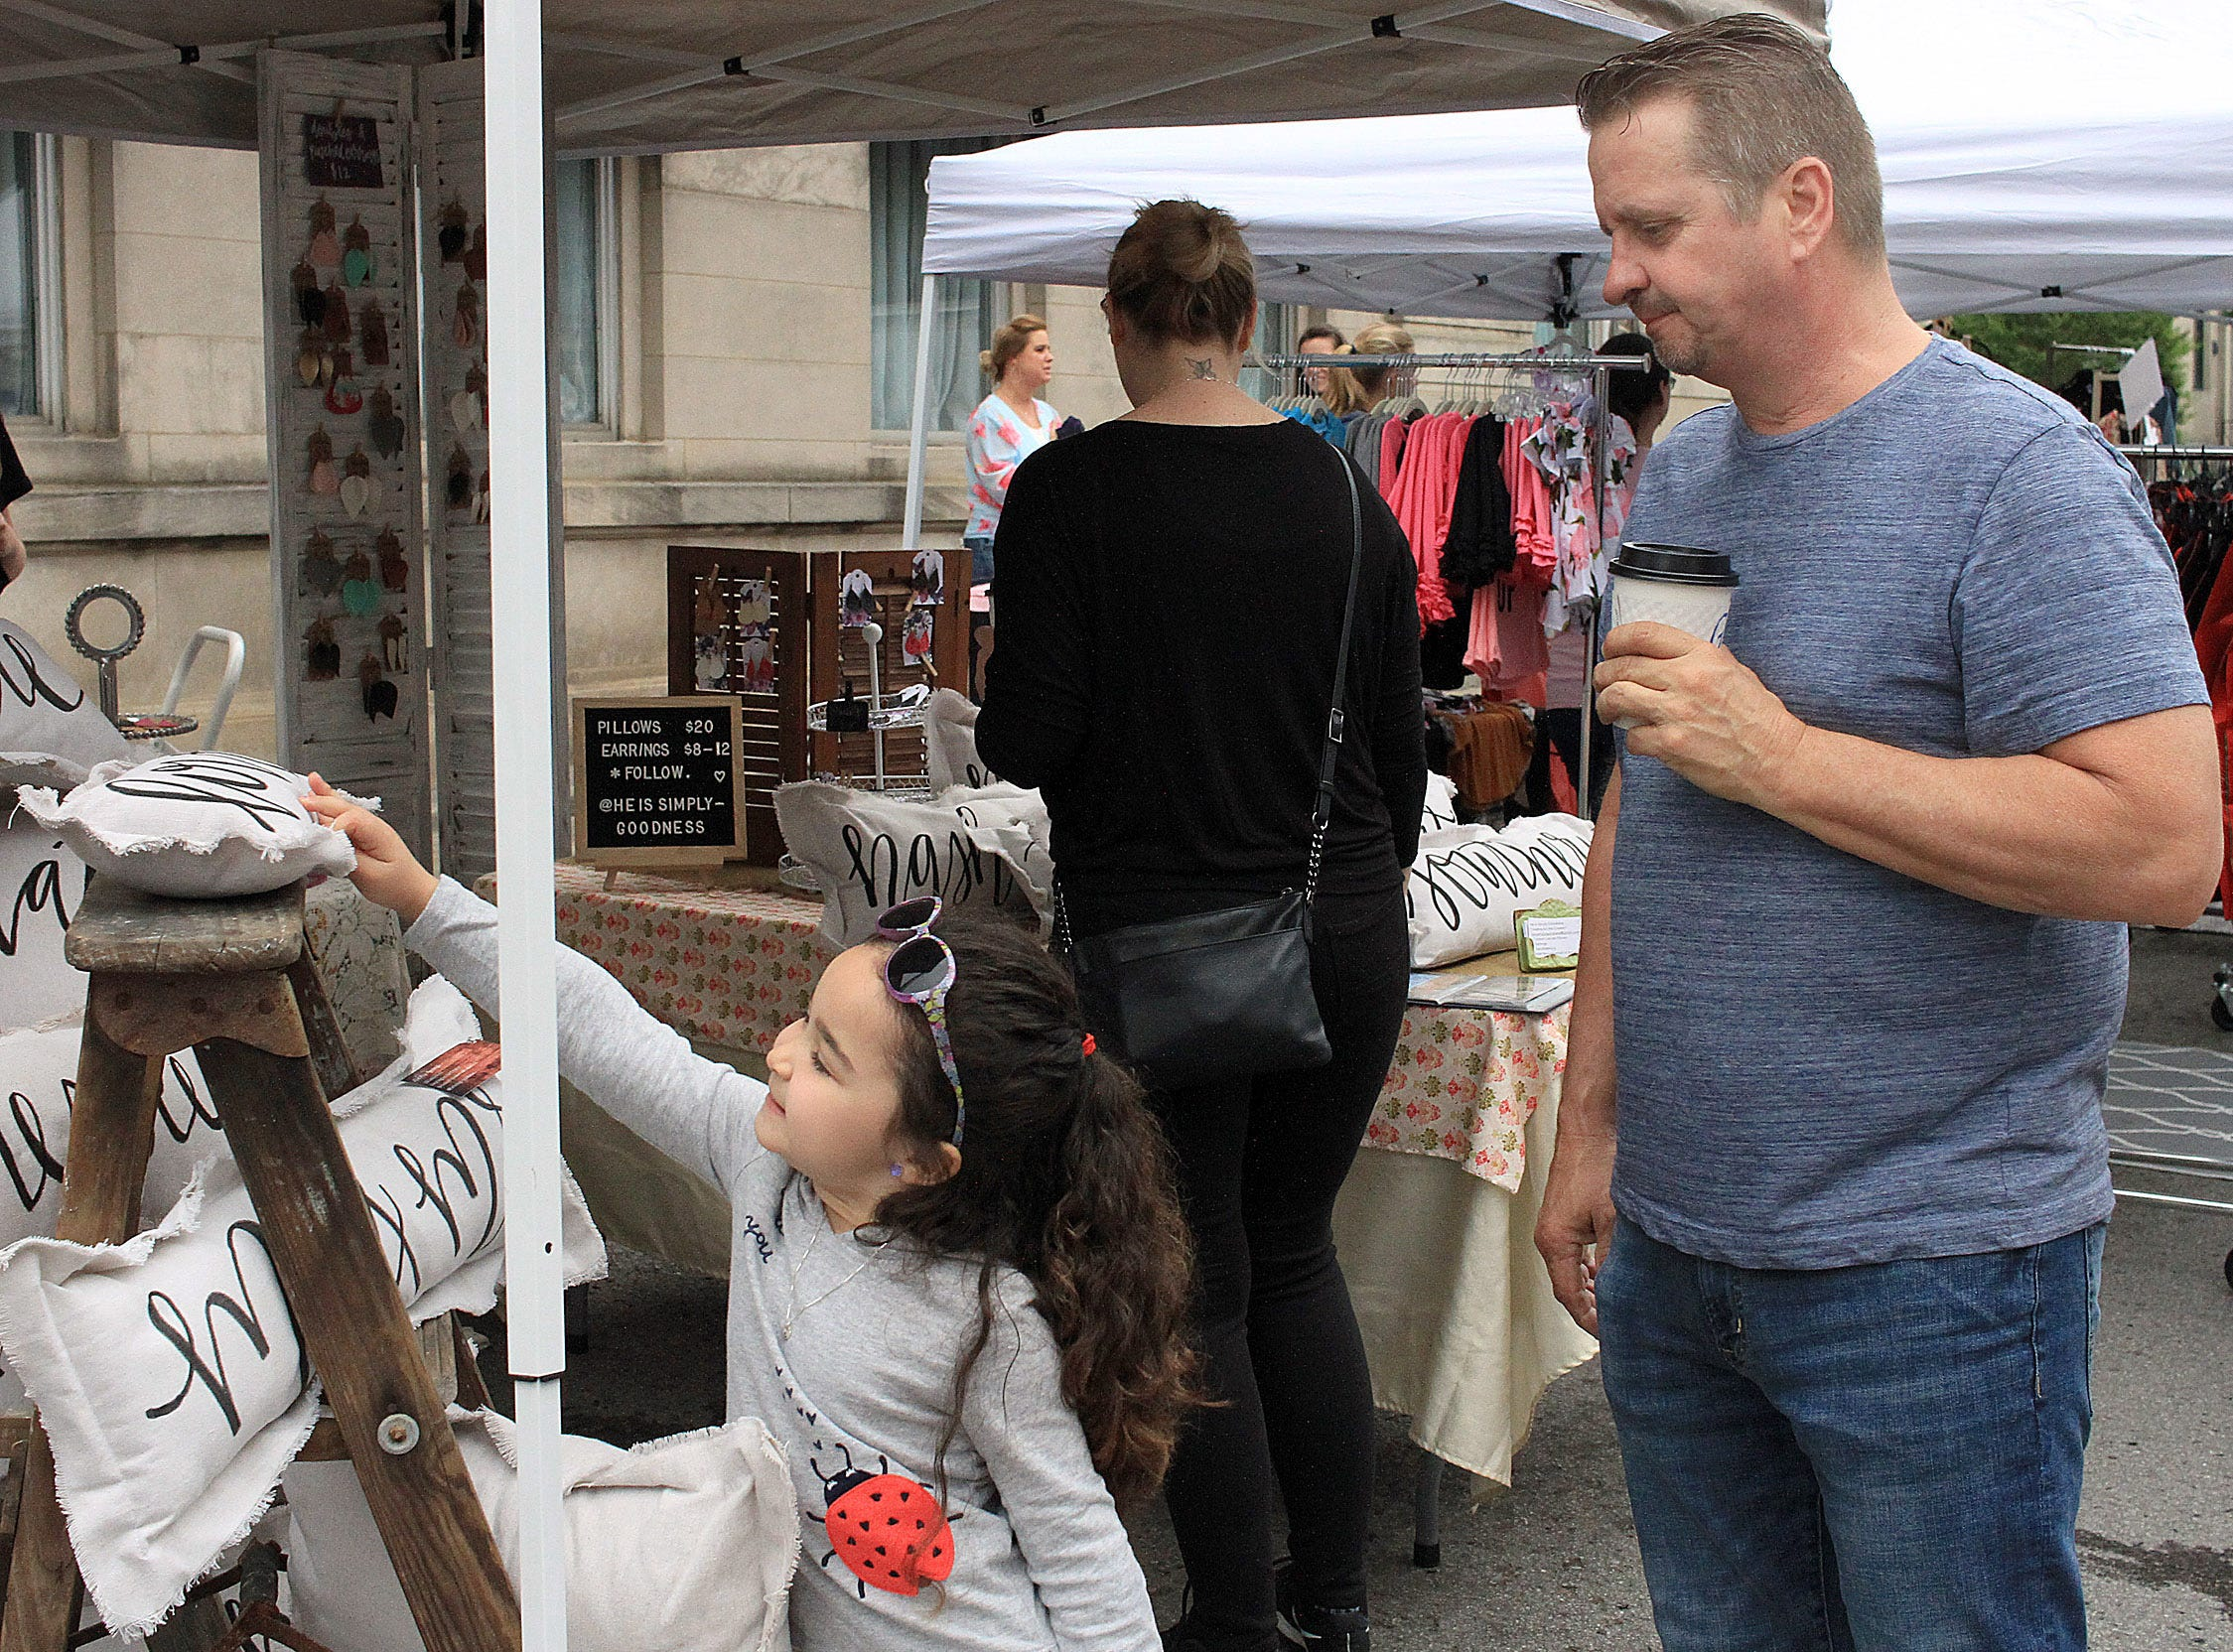 Ellie (5) with Dave Williams checks out some pillows at the Fashion Crawl in Gallatin, TN on Saturday, May 11, 2019.